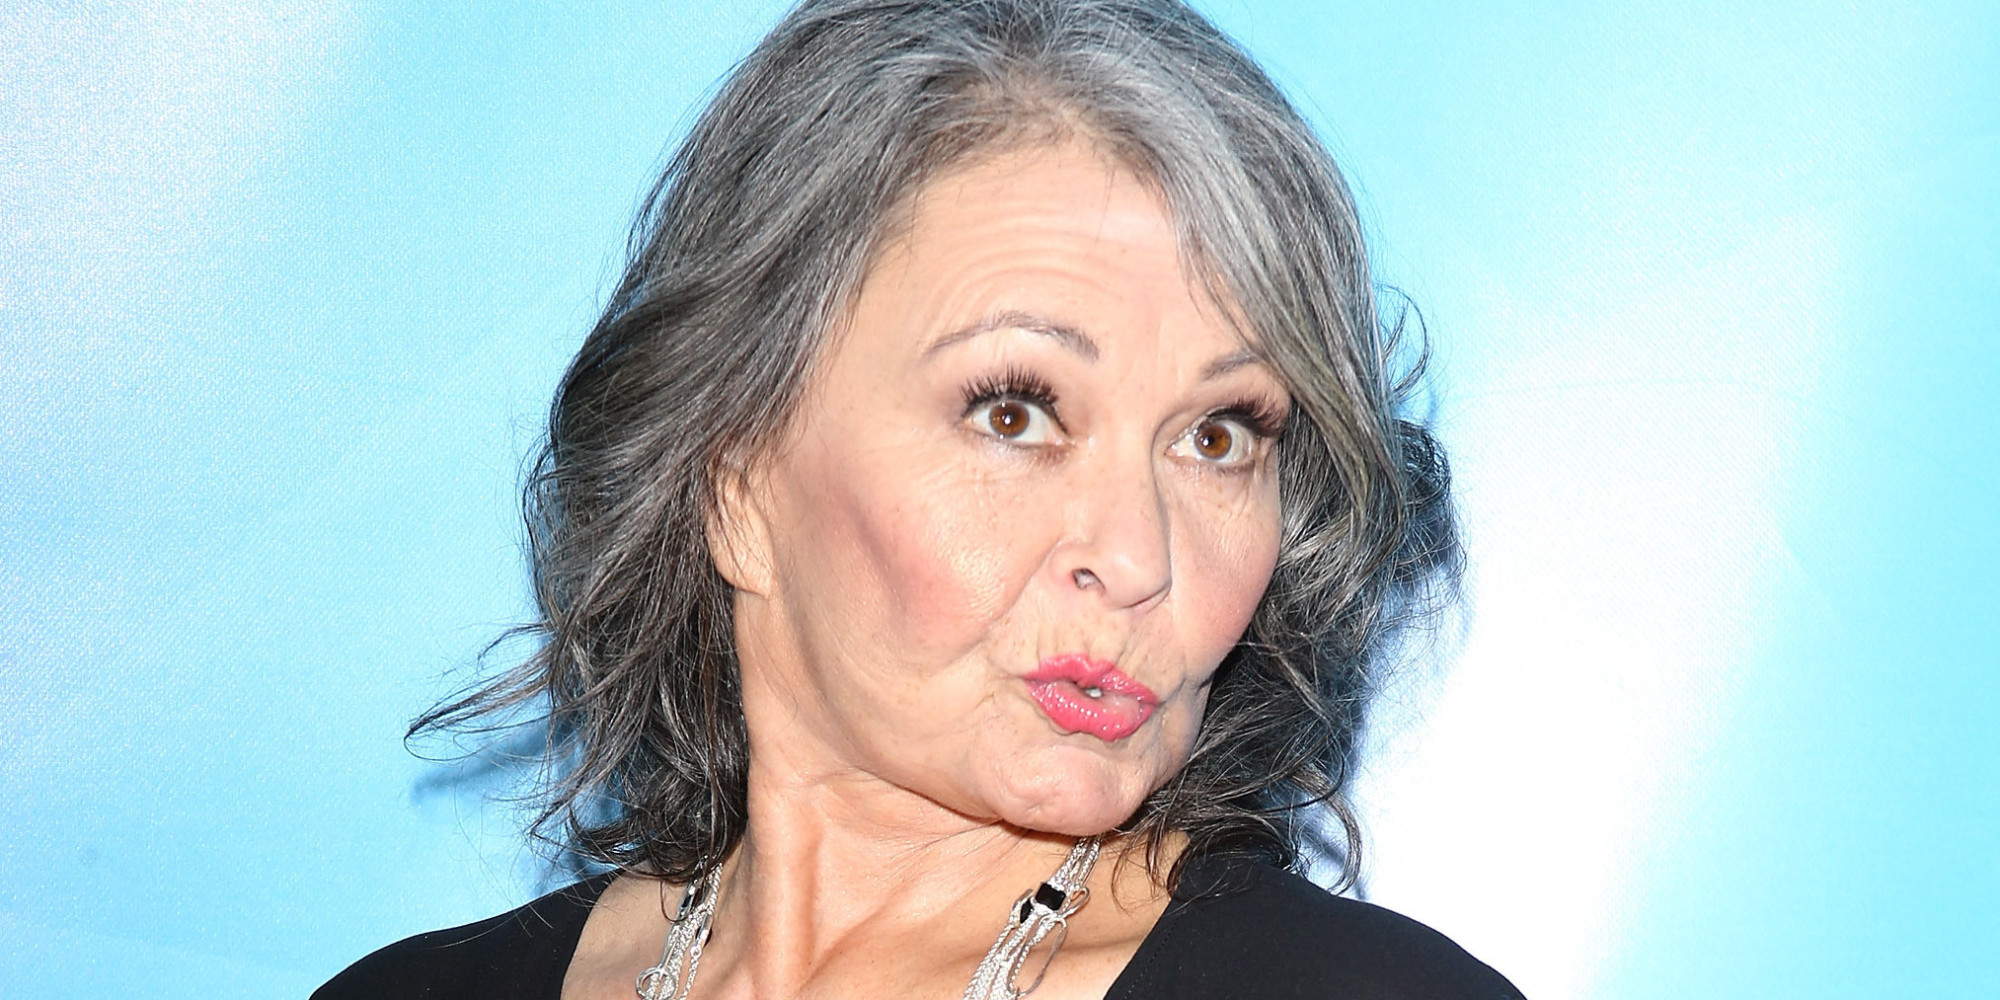 Roseanne Barr Posts Photo Of Bloodied Face, Jokes About